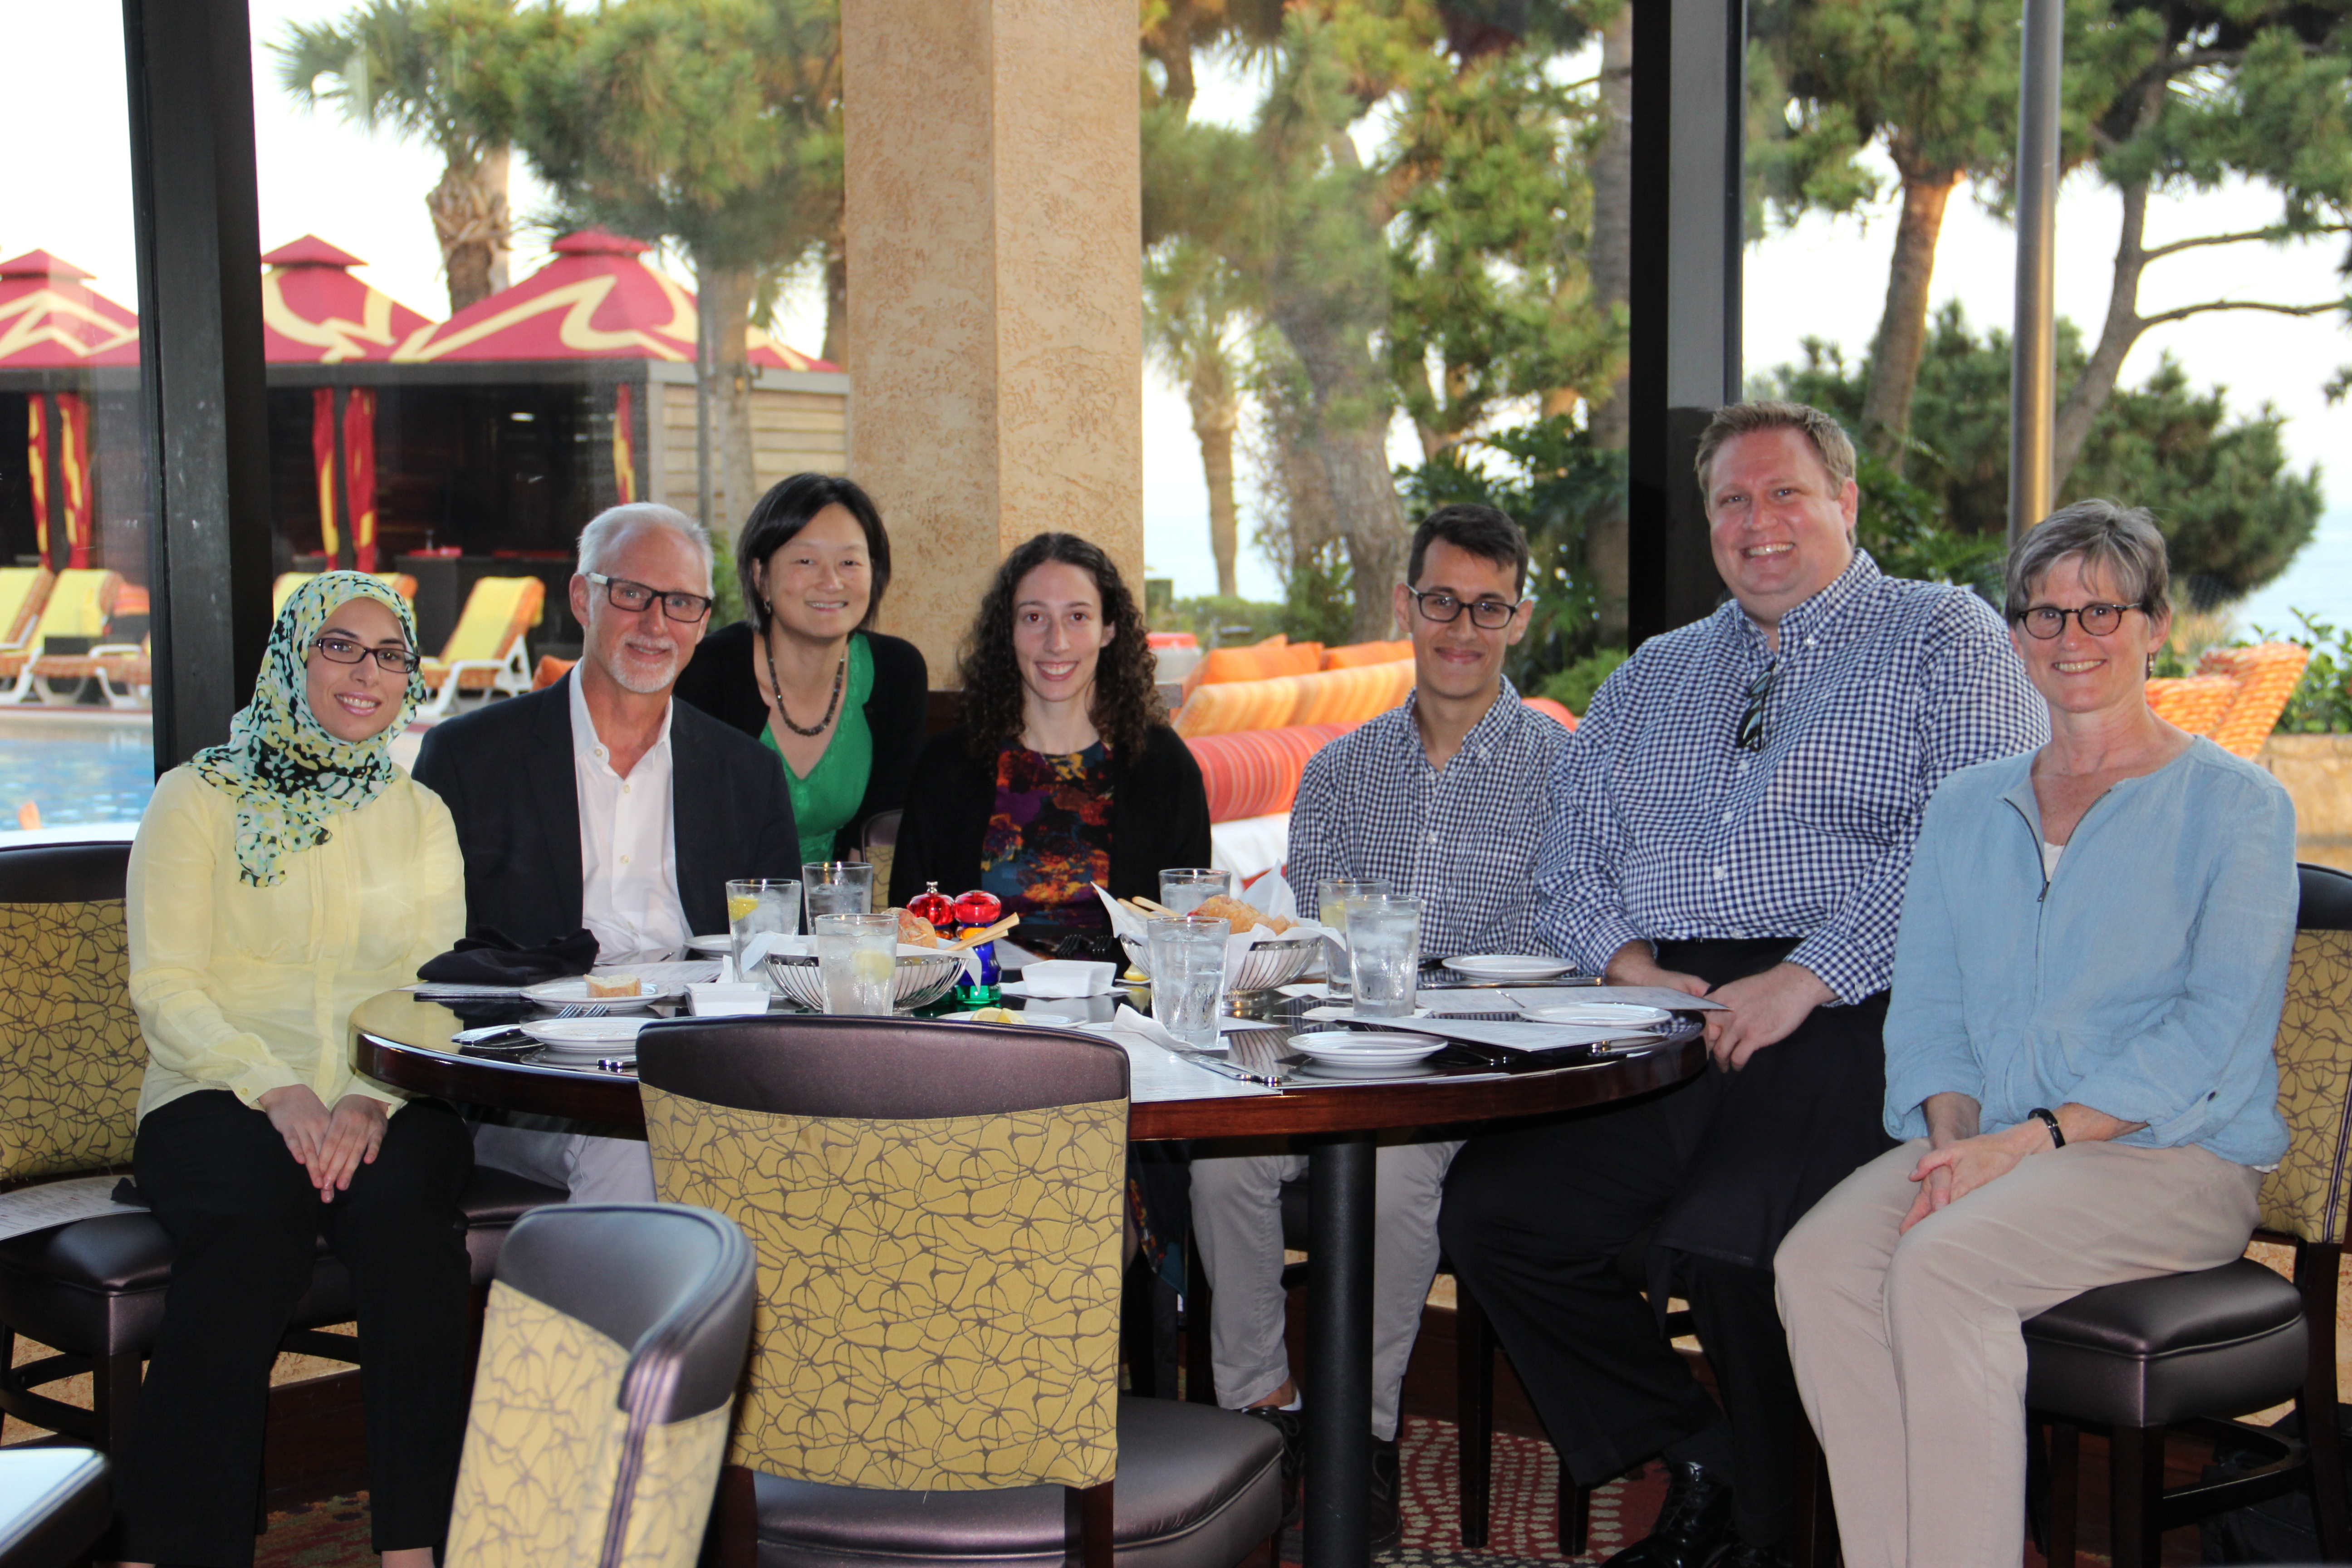 HPTM faculty and students attend the annual holiday gathering. (L to R) - Dr. Huda Sarraj, Dr. Mark Hellmich, Dr. Celia Chao, Corri Levine, Austin Miller, Edward Higgins, Dr. Judith Aronson